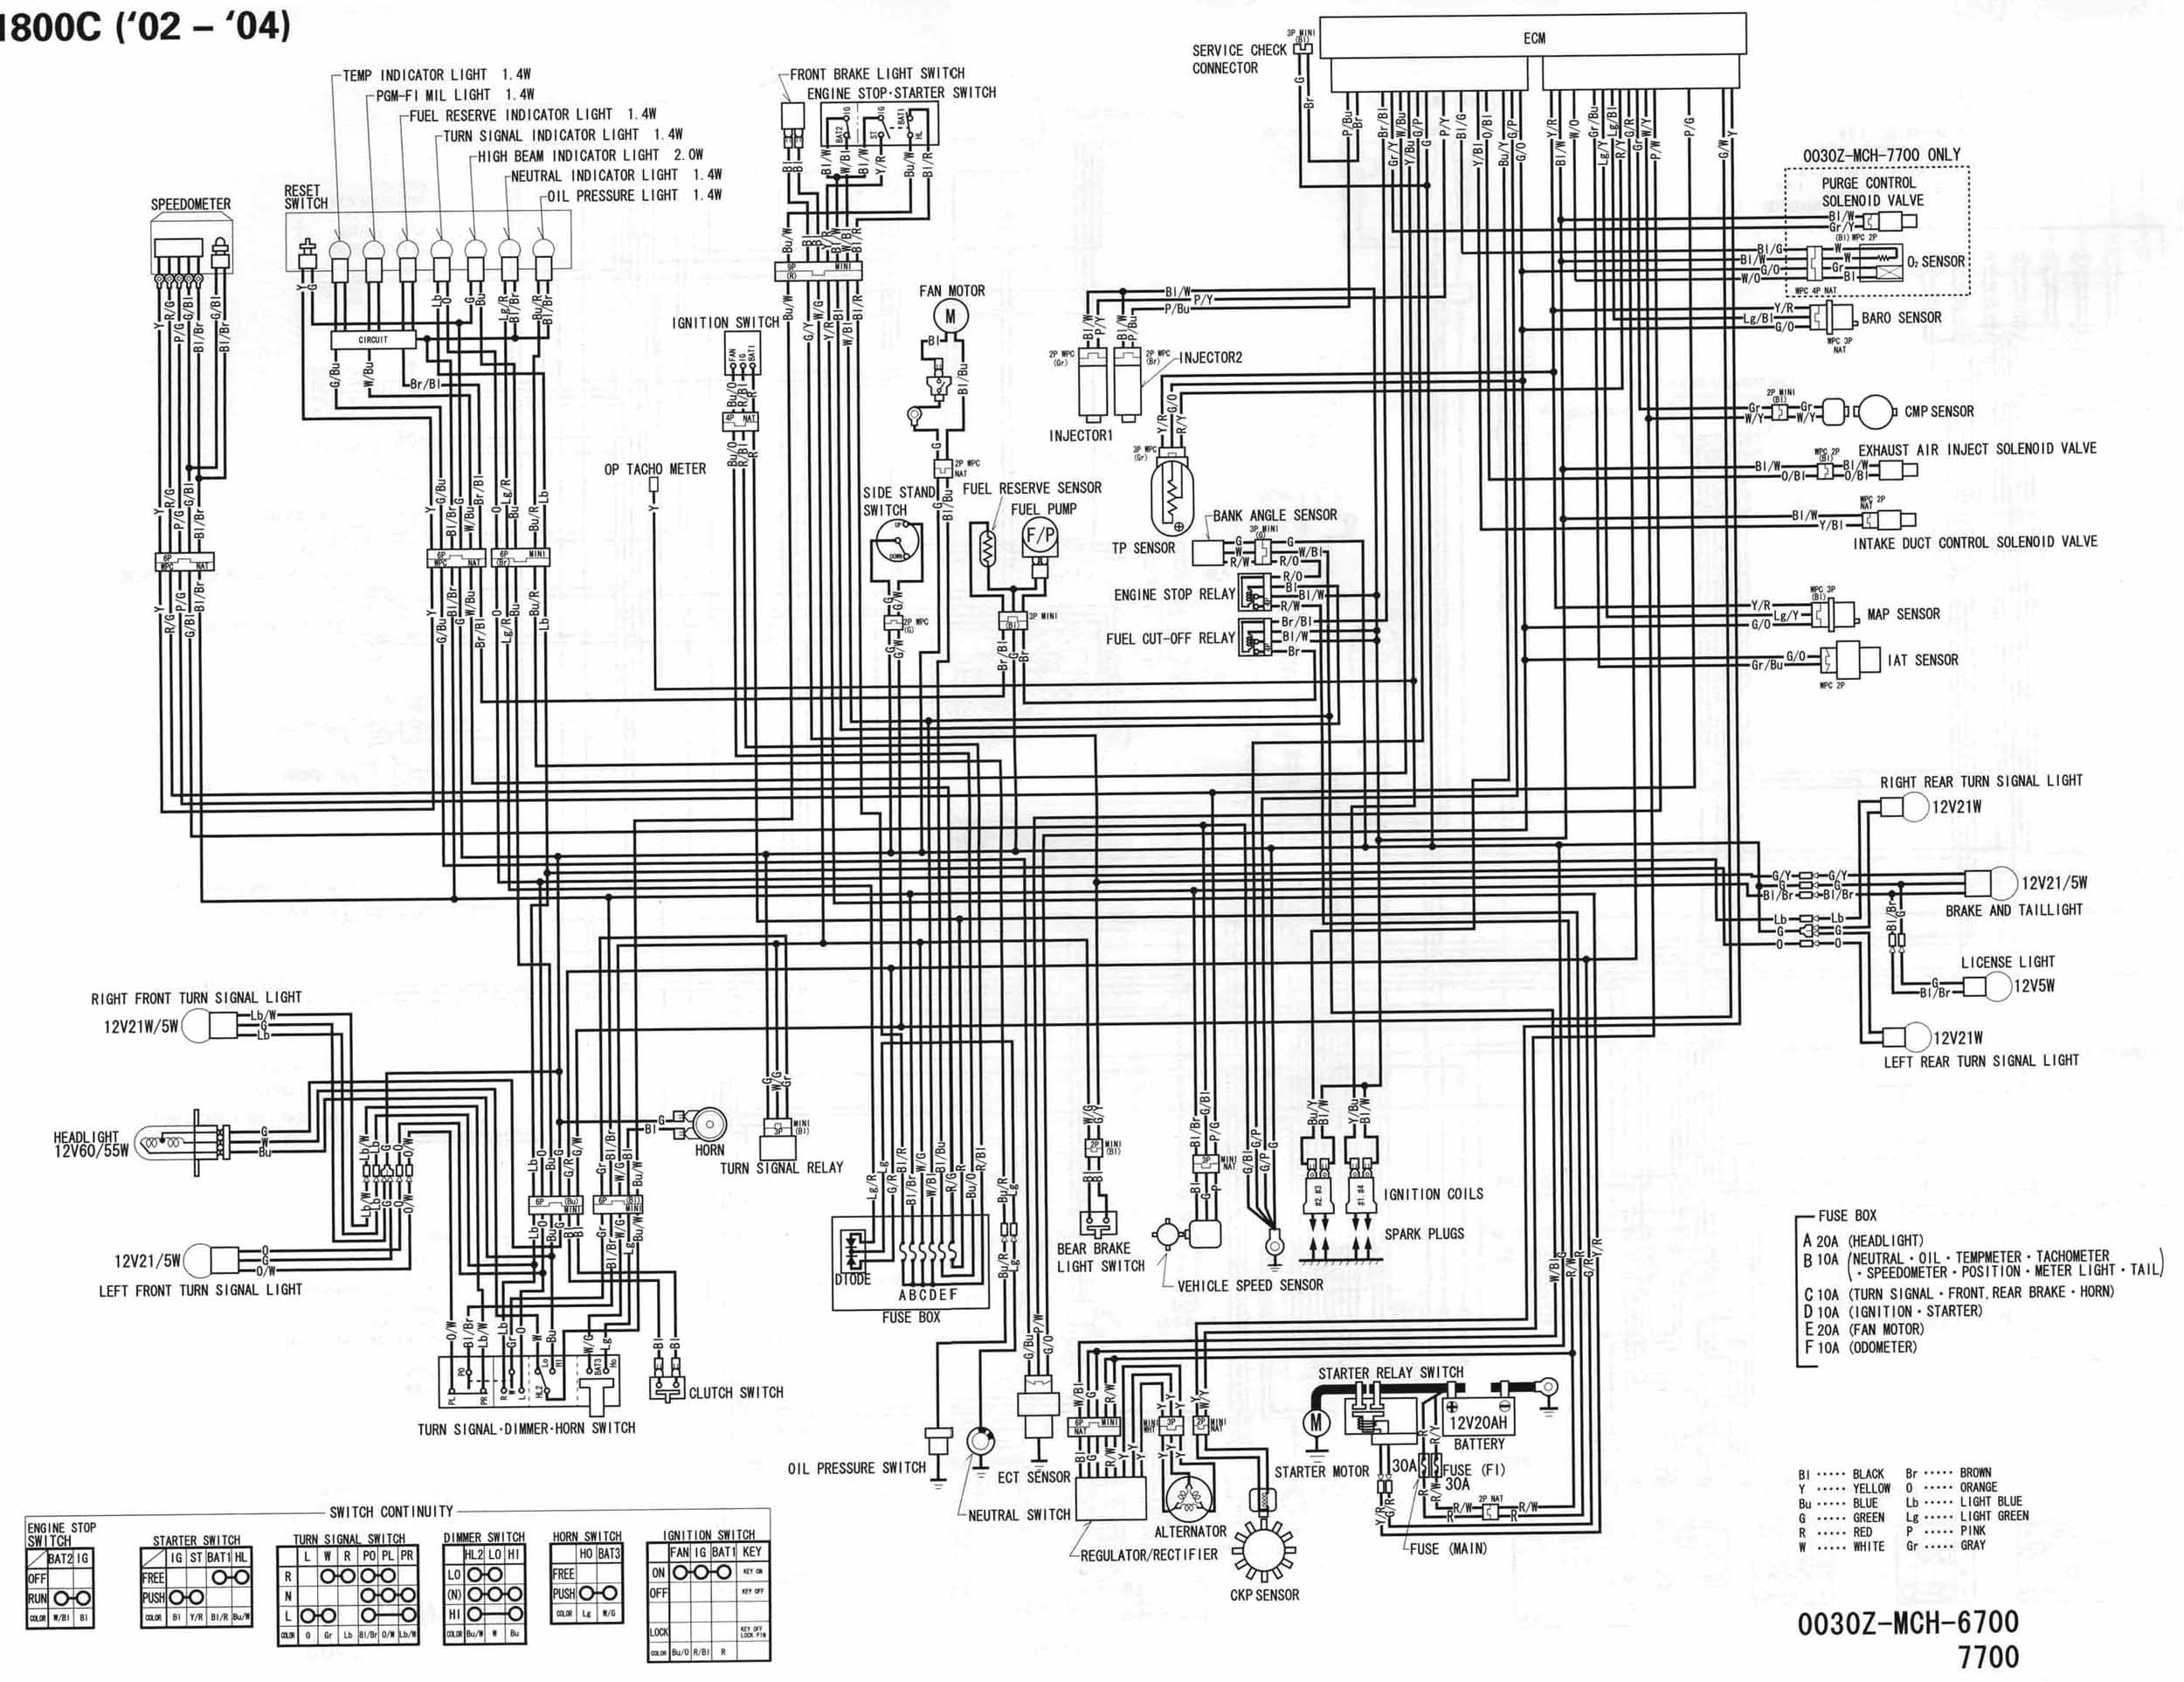 02 04_VTX1800_C_schematic motorcycle wire schematics bareass choppers motorcycle tech pages Basic Motorcycle Wiring Diagram at nearapp.co